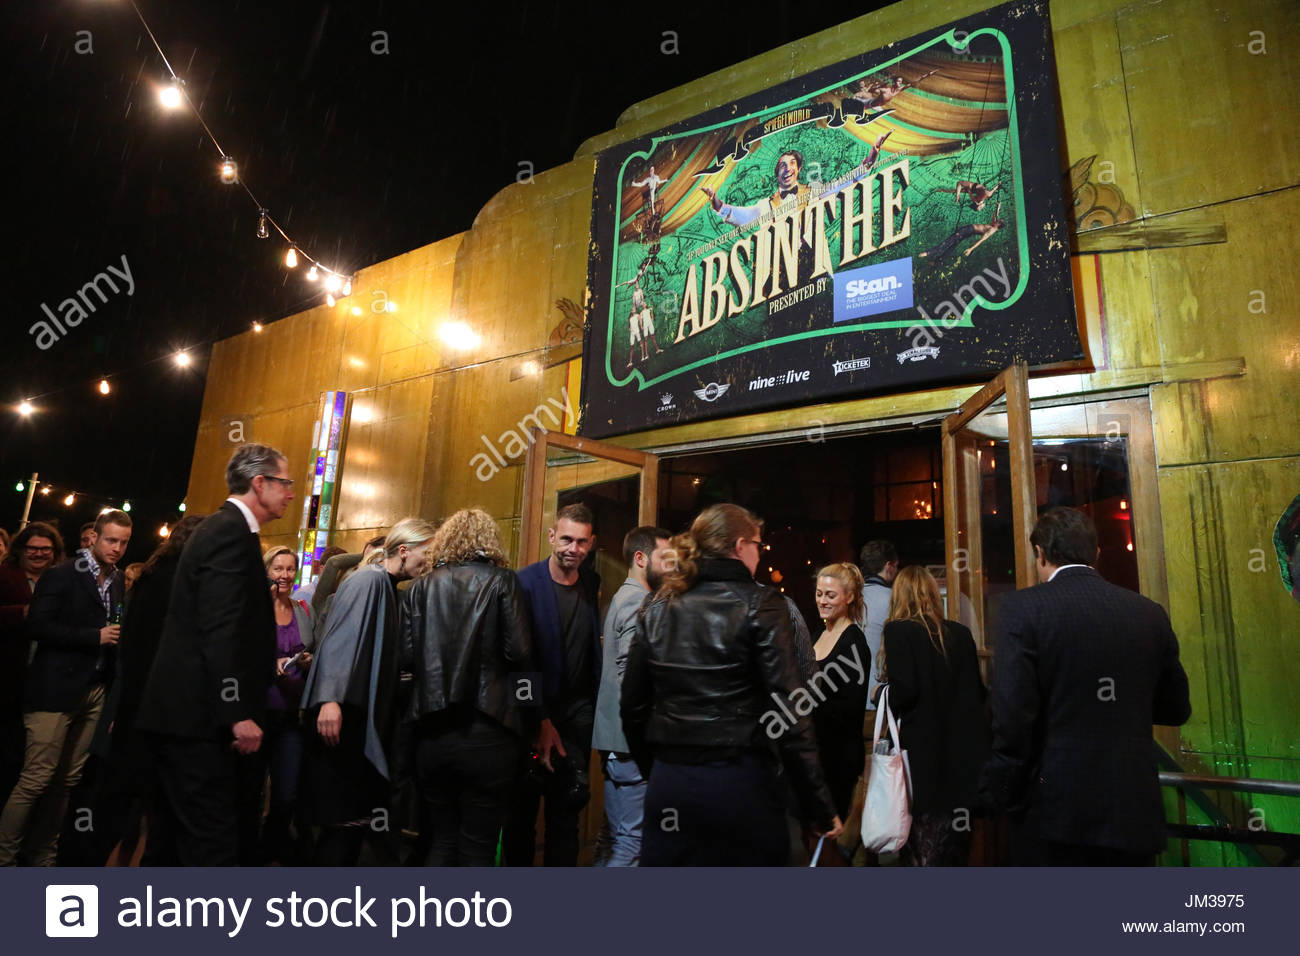 Absinthe spiegeltent. The Smash-hit Las Vegas show Absinthe by Spiegelworld an & Absinthe spiegeltent. The Smash-hit Las Vegas show Absinthe by ...